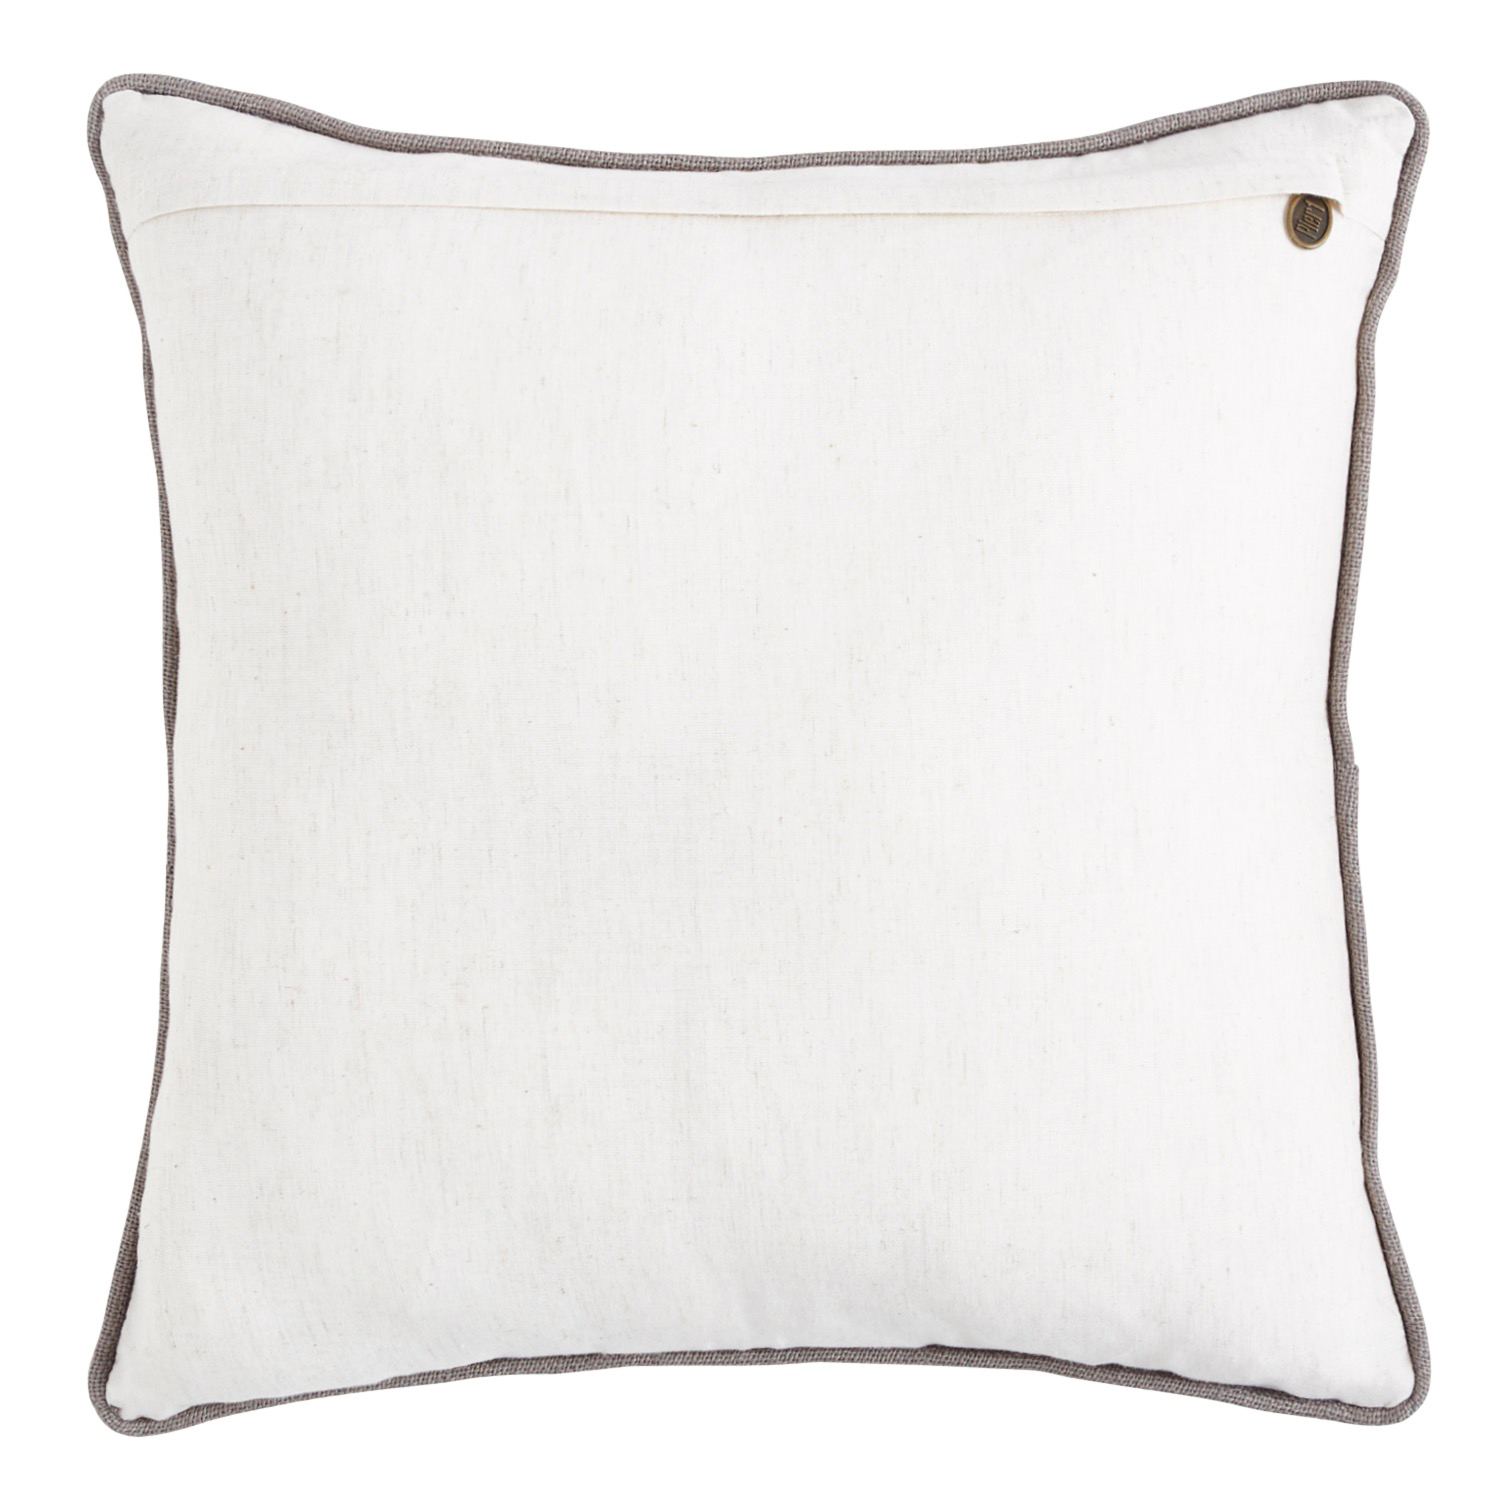 Give Thanks Truck Gray Pillow